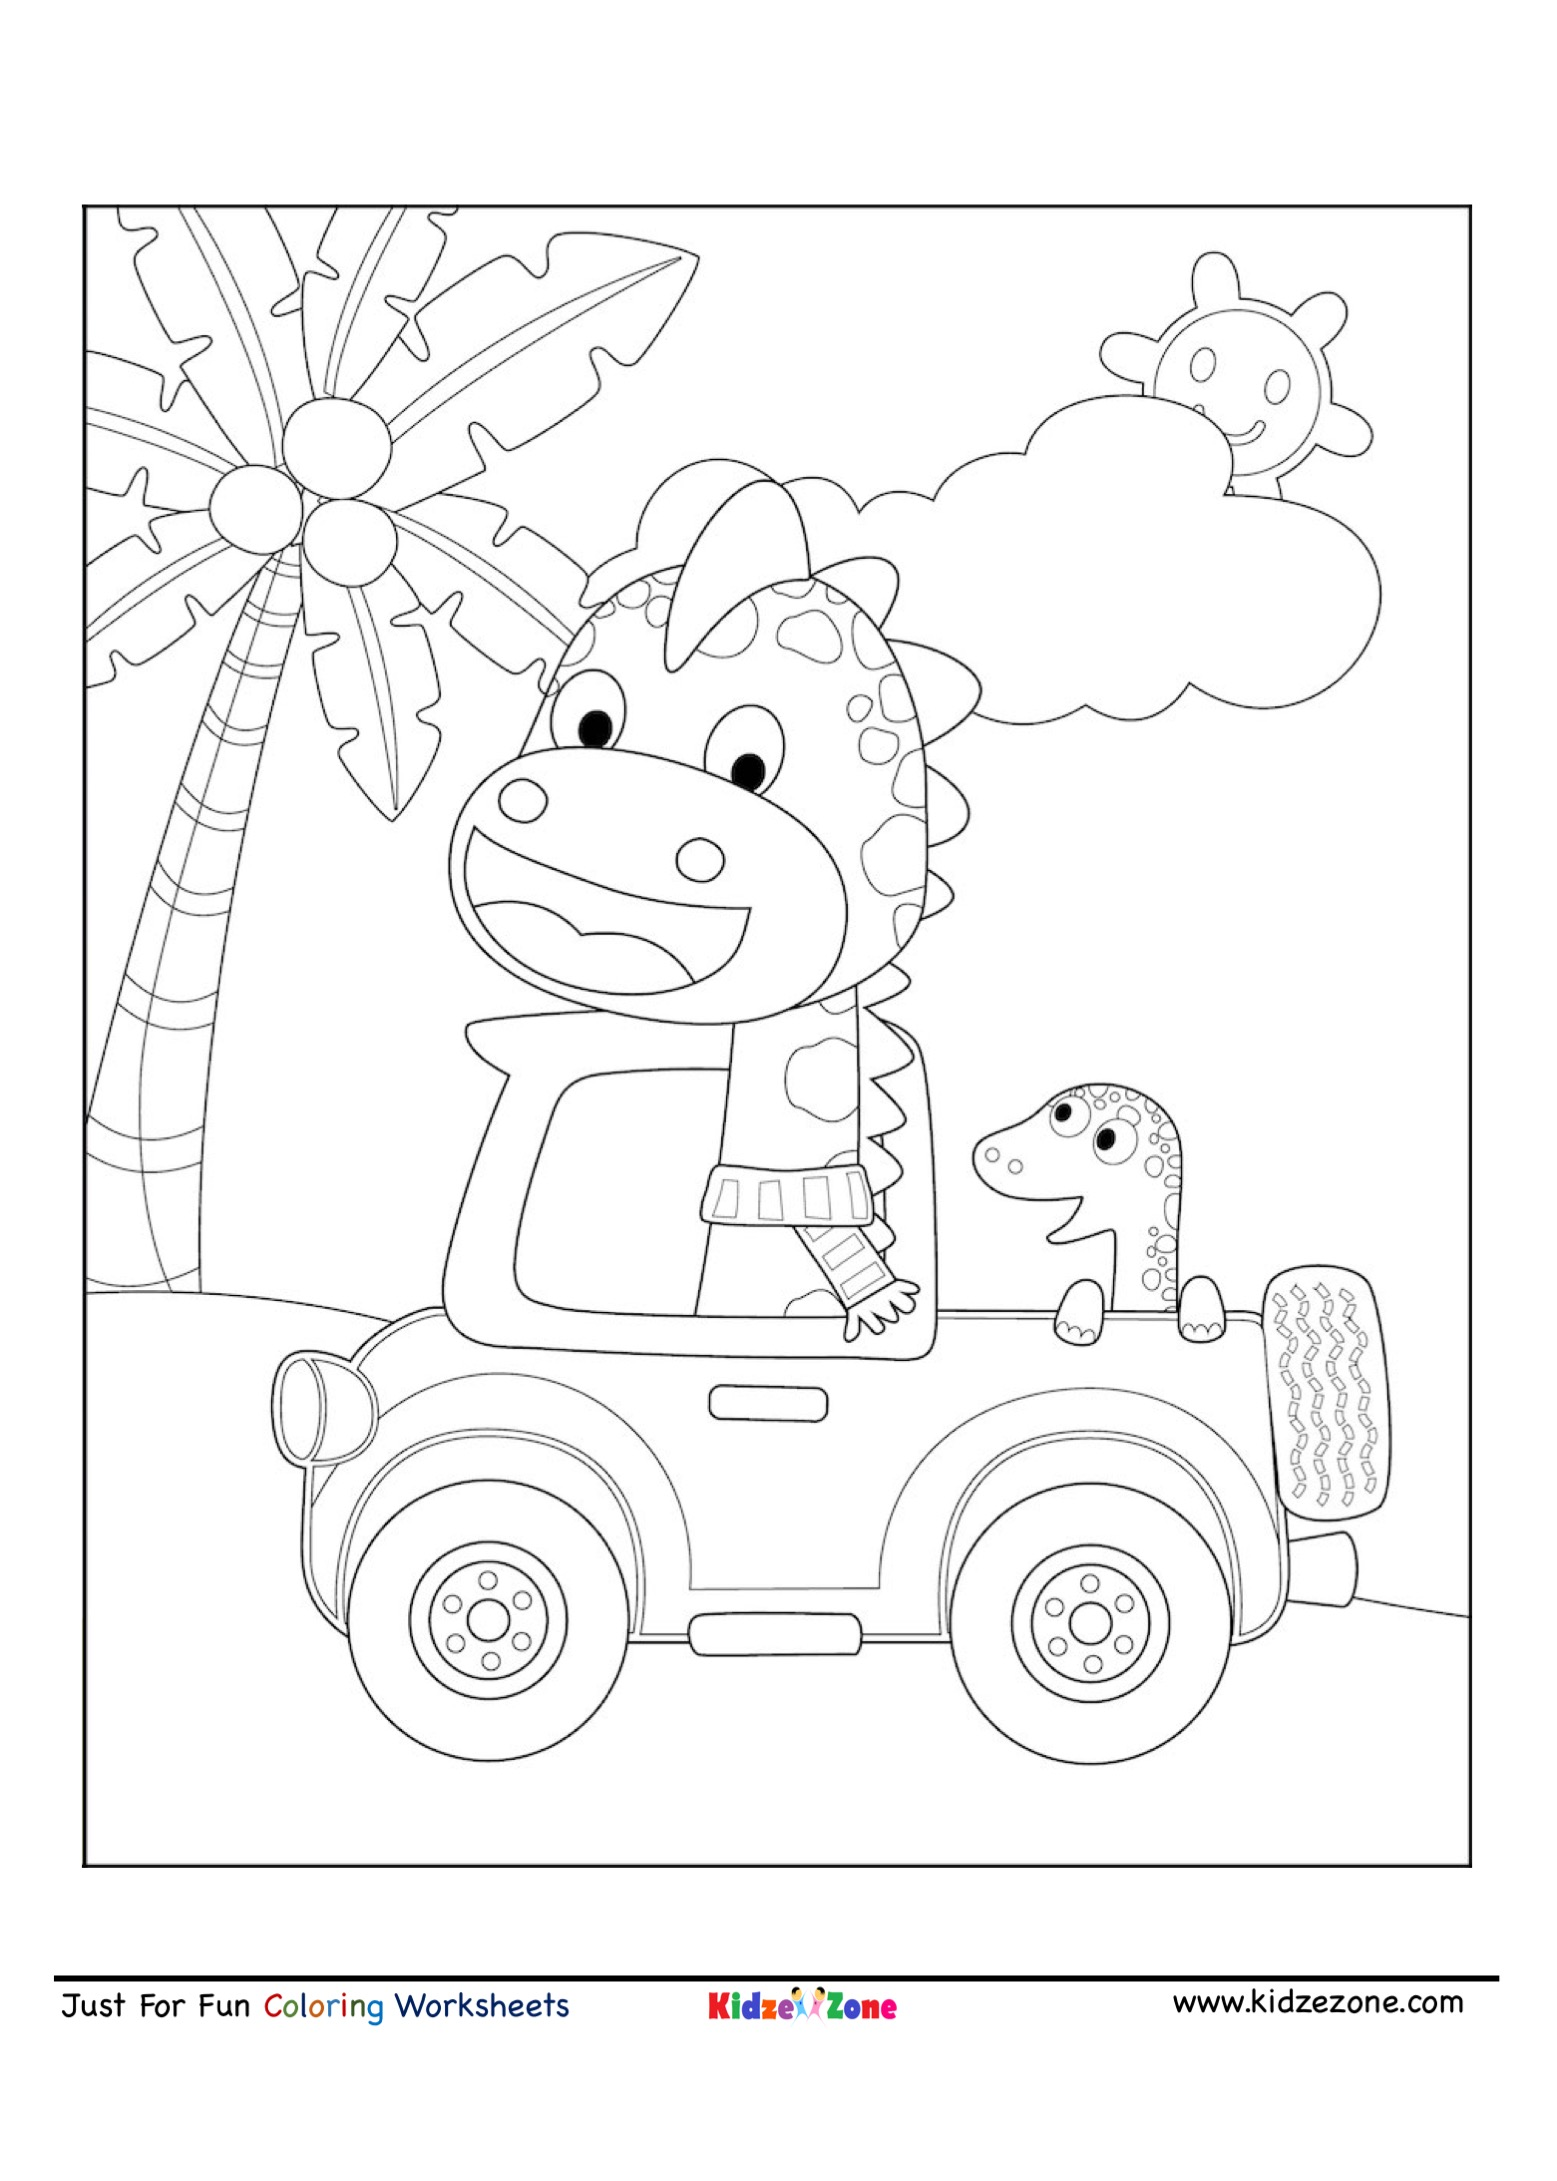 Giraffe And Friends Driving Coloring Page